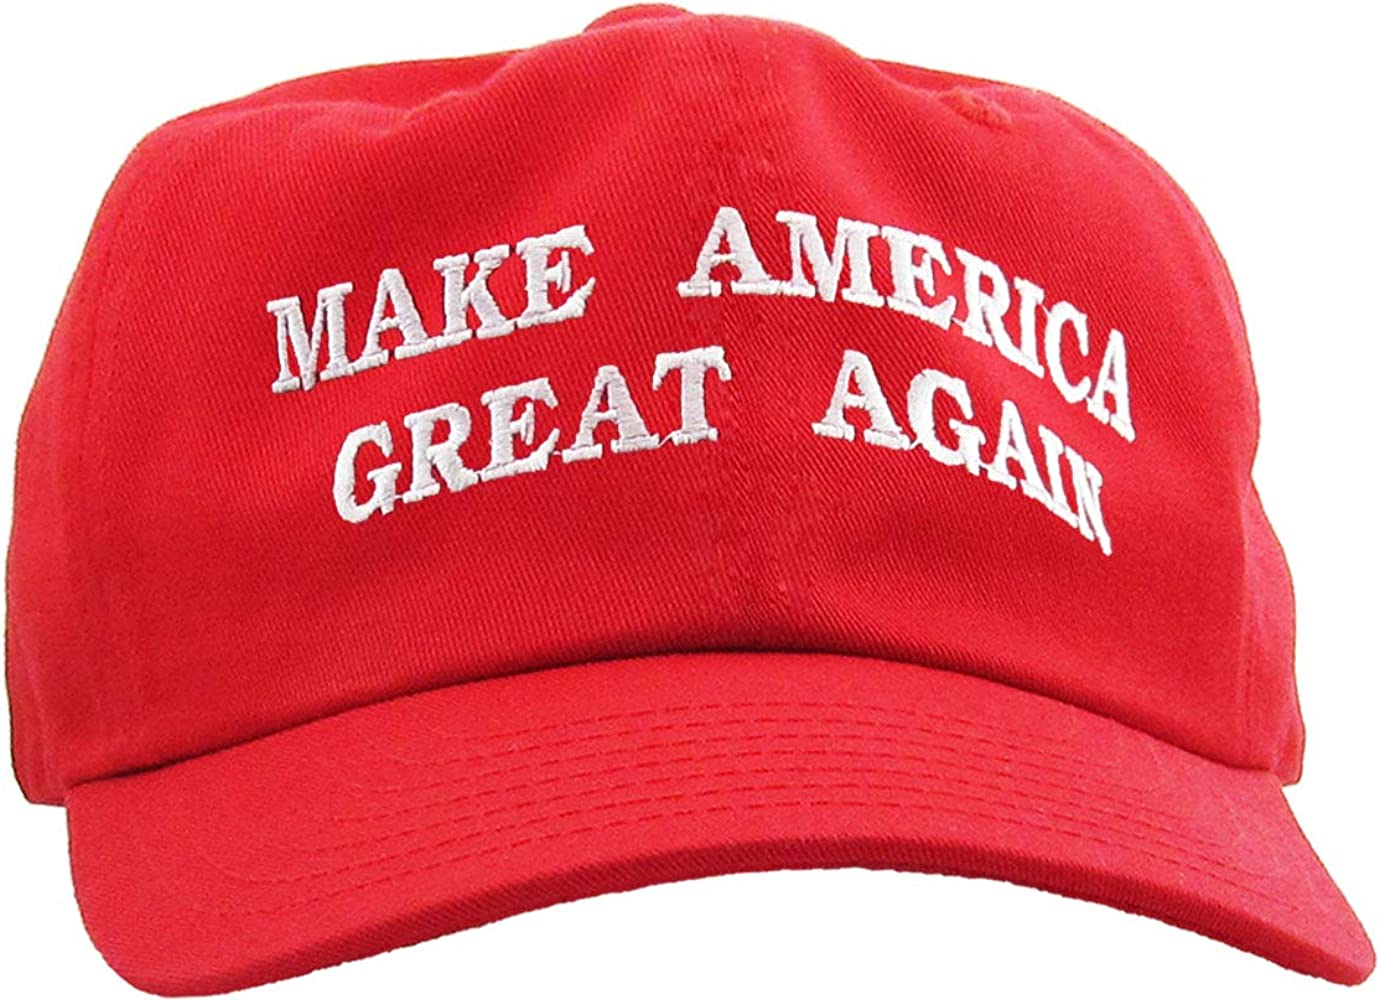 Donald Trump 2016 Embroidered Campaign Hat HomeSmith Make America Great Again